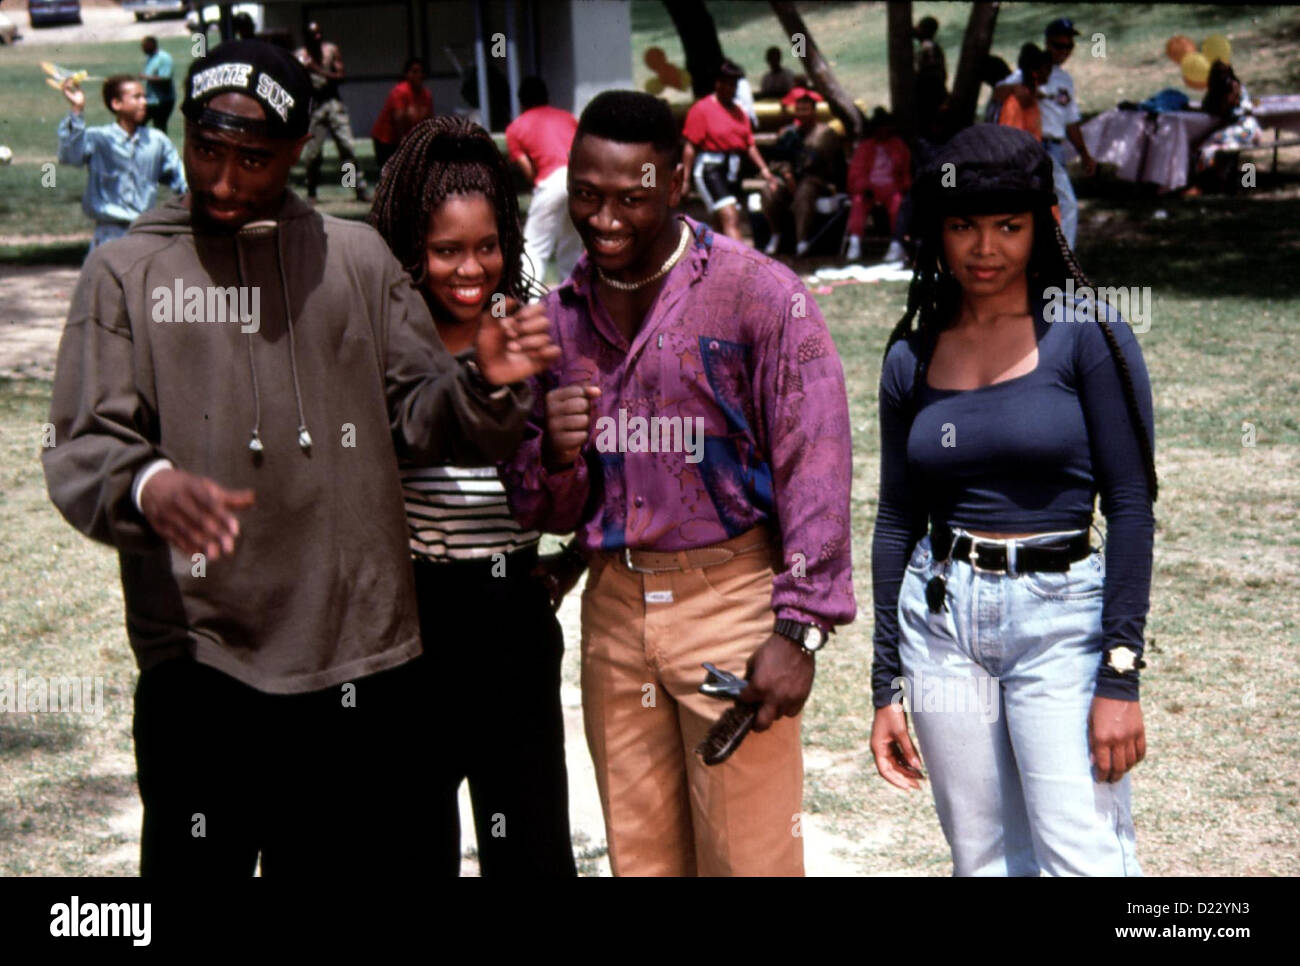 poetic justice a look at king The movie poetic justice by john singleton 1 home news celebs by regina king iesha vashon lecesne angry customer jennifer leigh beauty college instructor [as iesha vomits on the side on the road after having drunk too much alcohol] look at you share this abigail breslin.